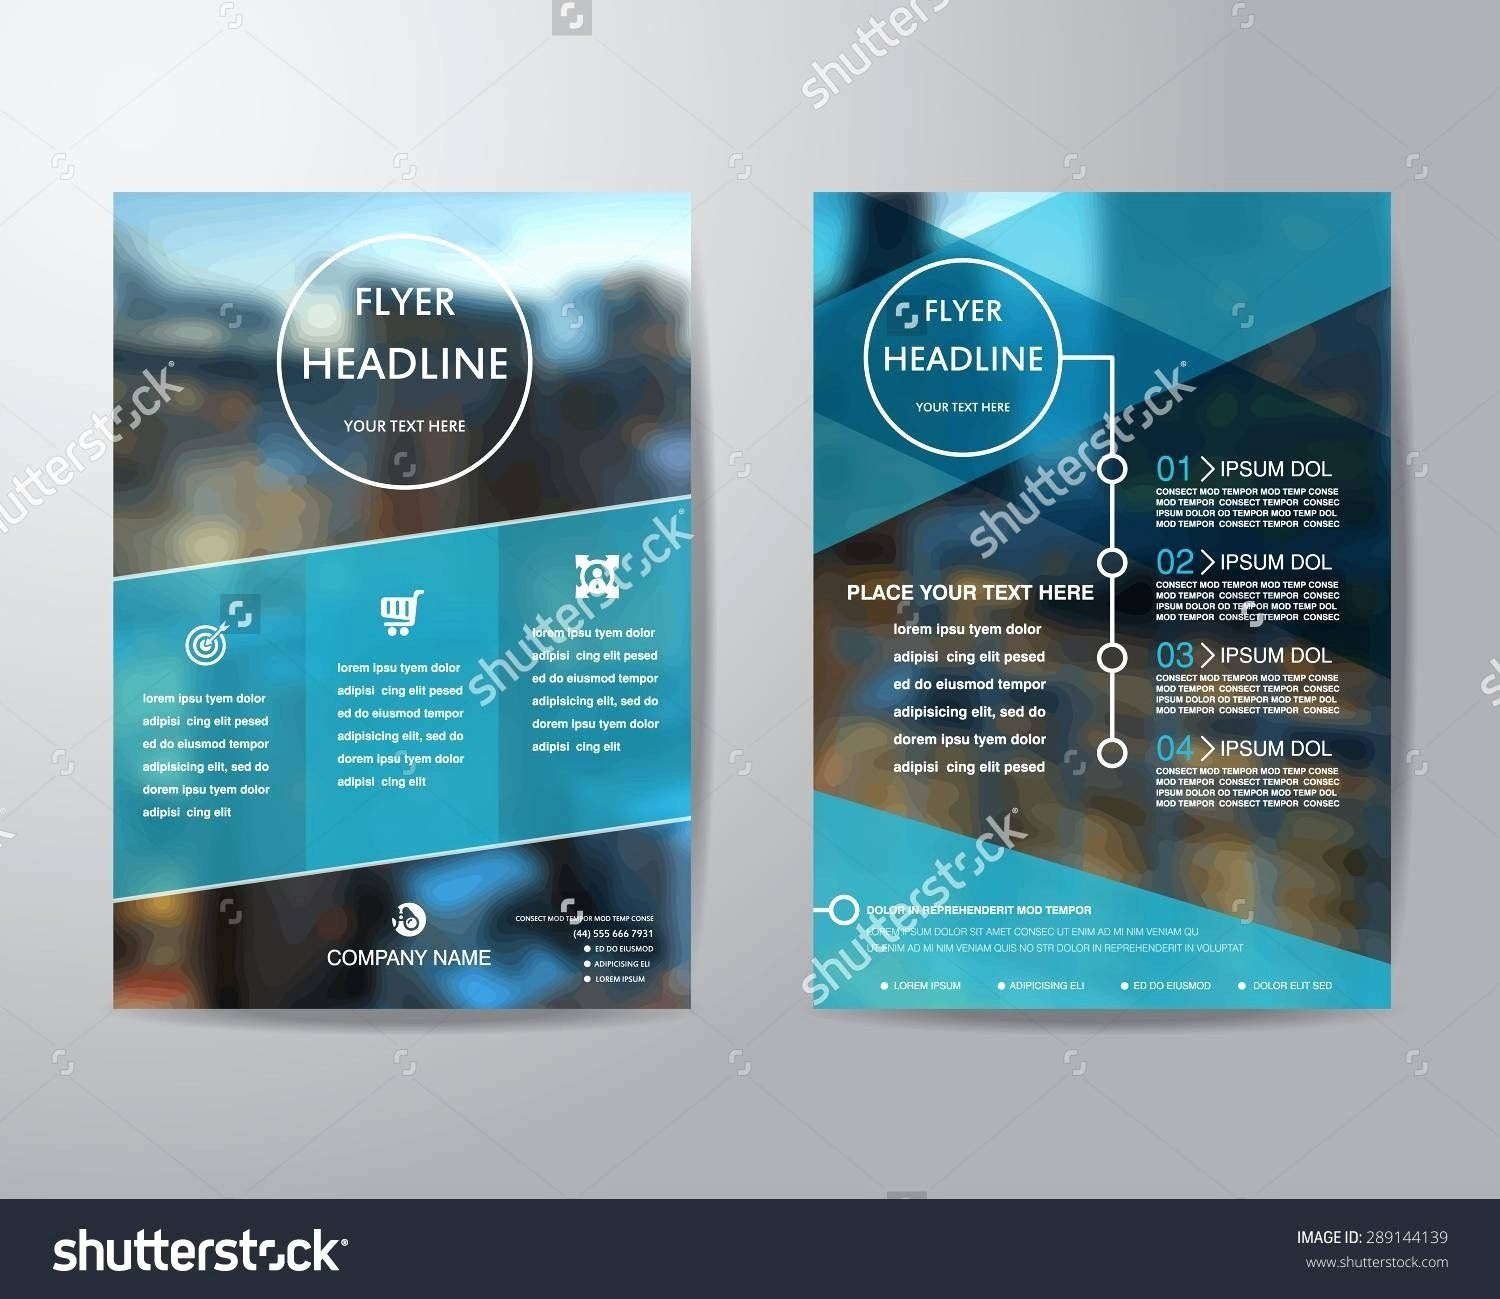 Dance Certificate Templates For Word Inspirational 55 Dance Flyer Template Wor Free Brochure Template Brochure Templates Free Download Brochure Design Template